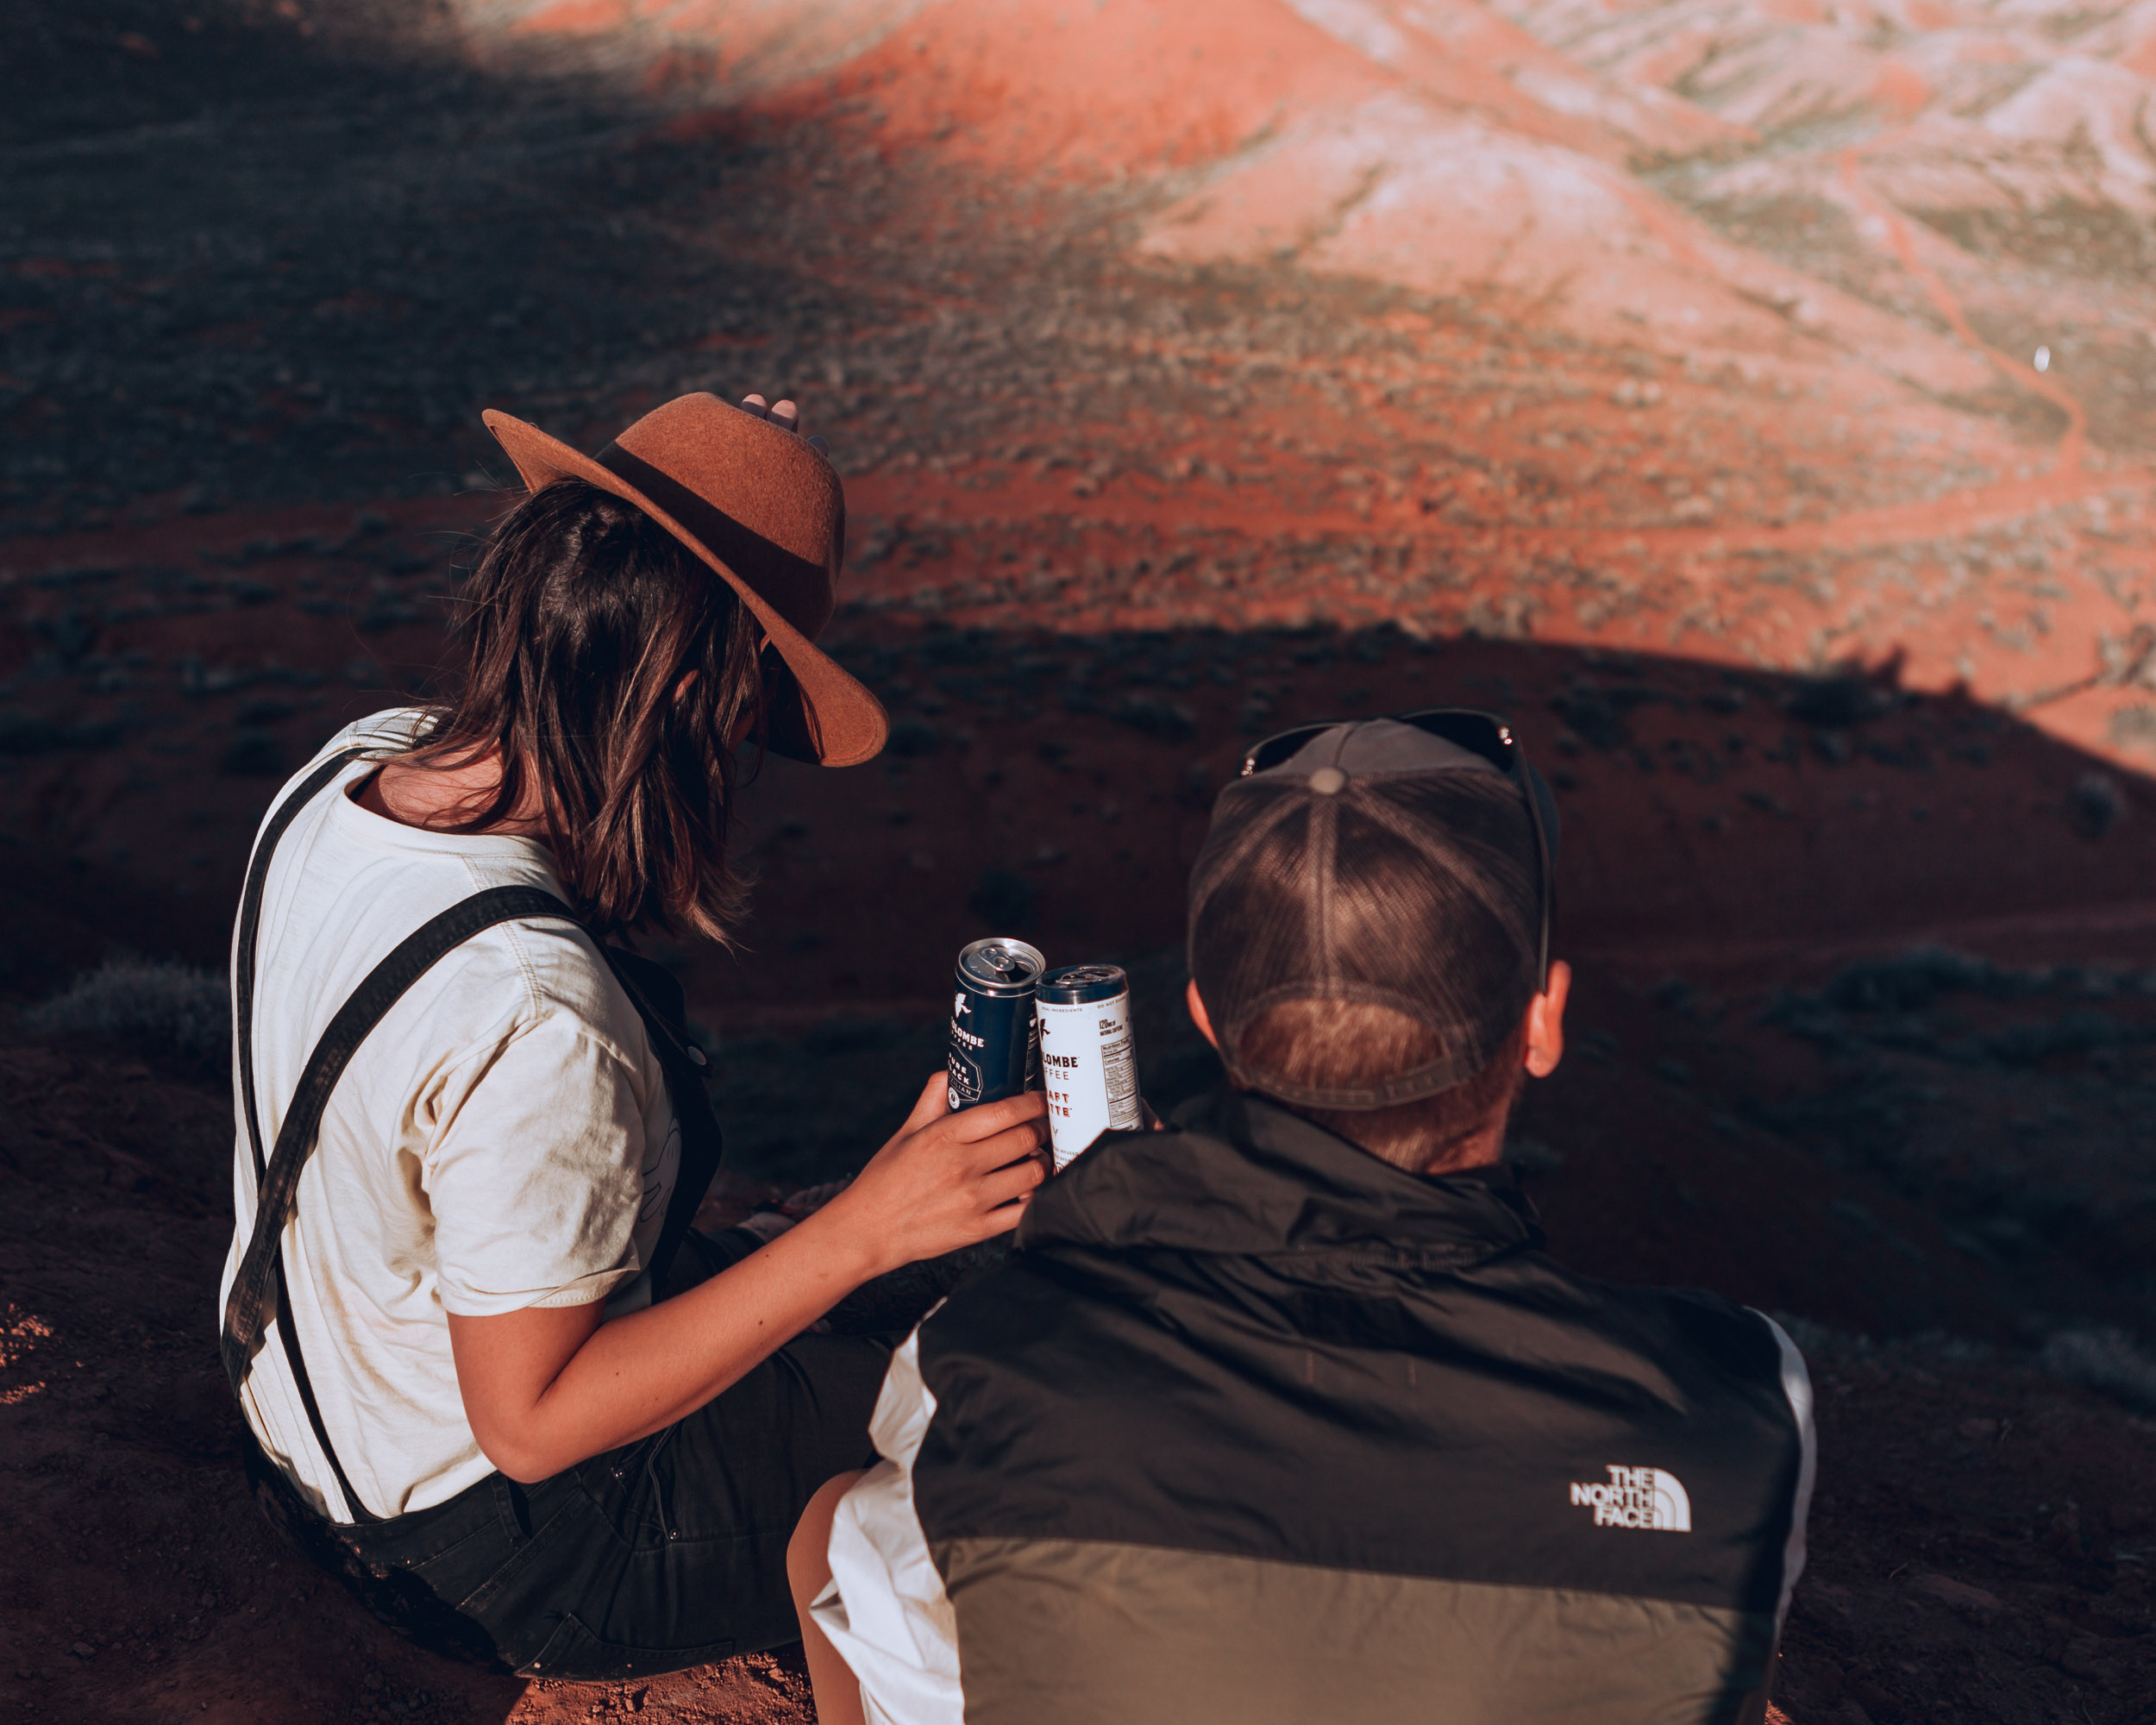 brixton-hat-adventure-lifestyle-photo-moab.JPG